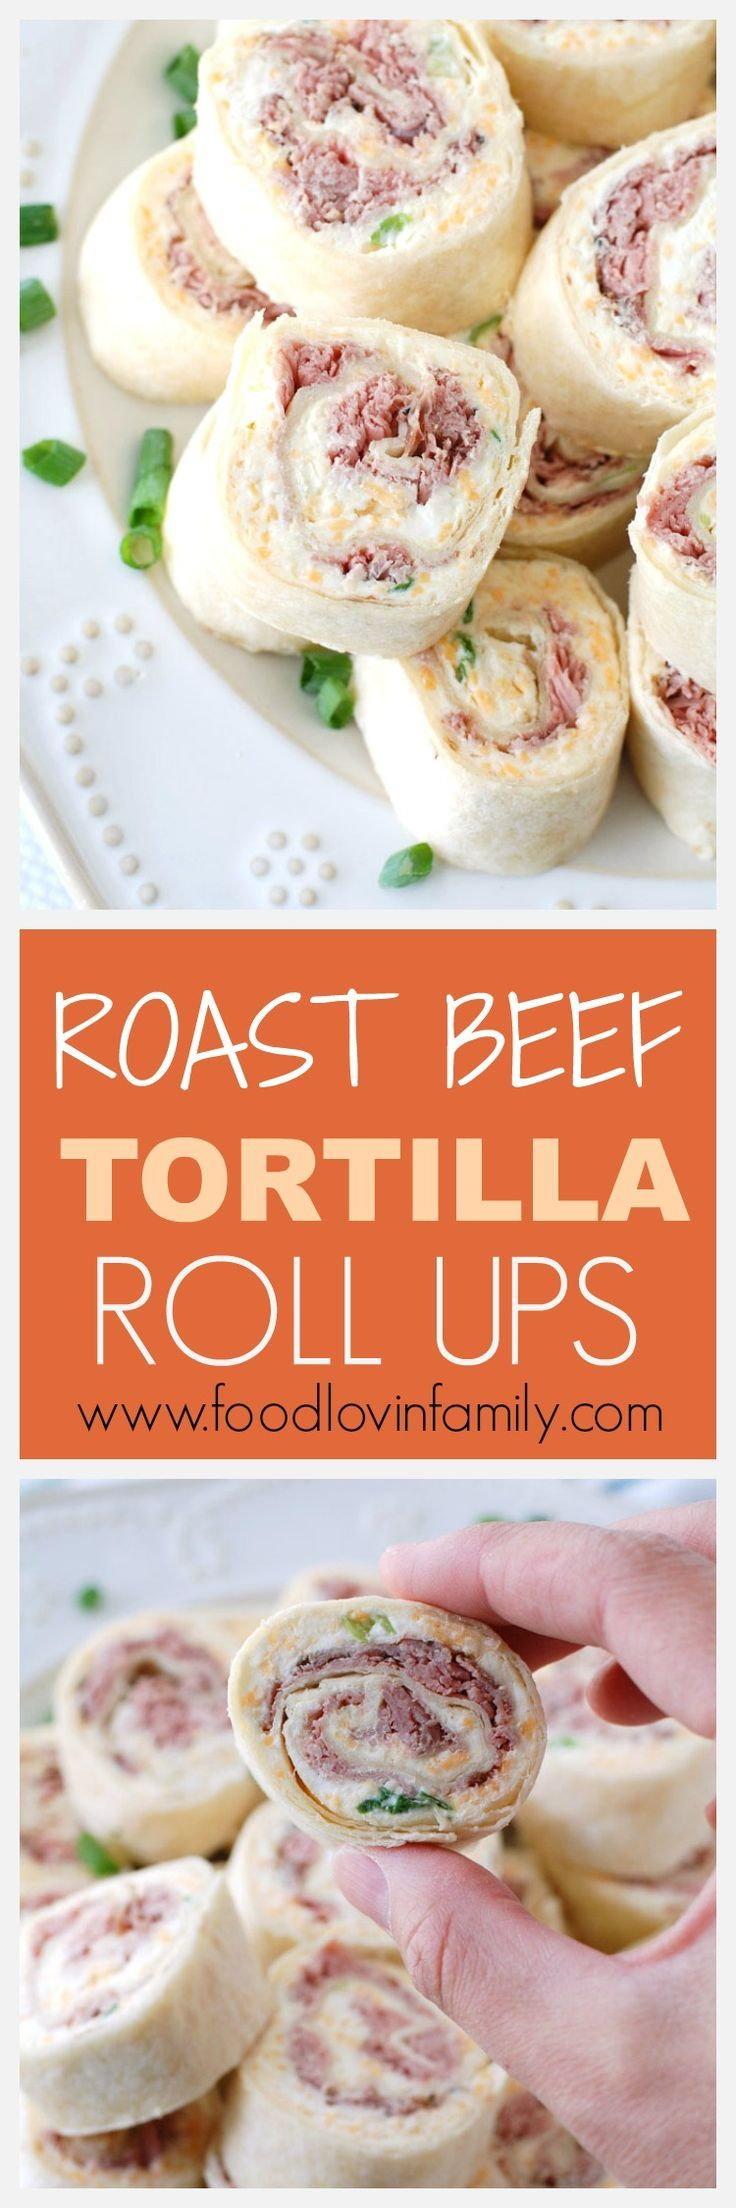 These creamy roast beef tortilla roll ups are a great make-ahead appetizer or lunch. Fast to make and filled with delicious flavors.Perfect for game day, school day, or any day. | http://www.foodlovinfamily.com/roast-beef-tortilla-roll-ups/